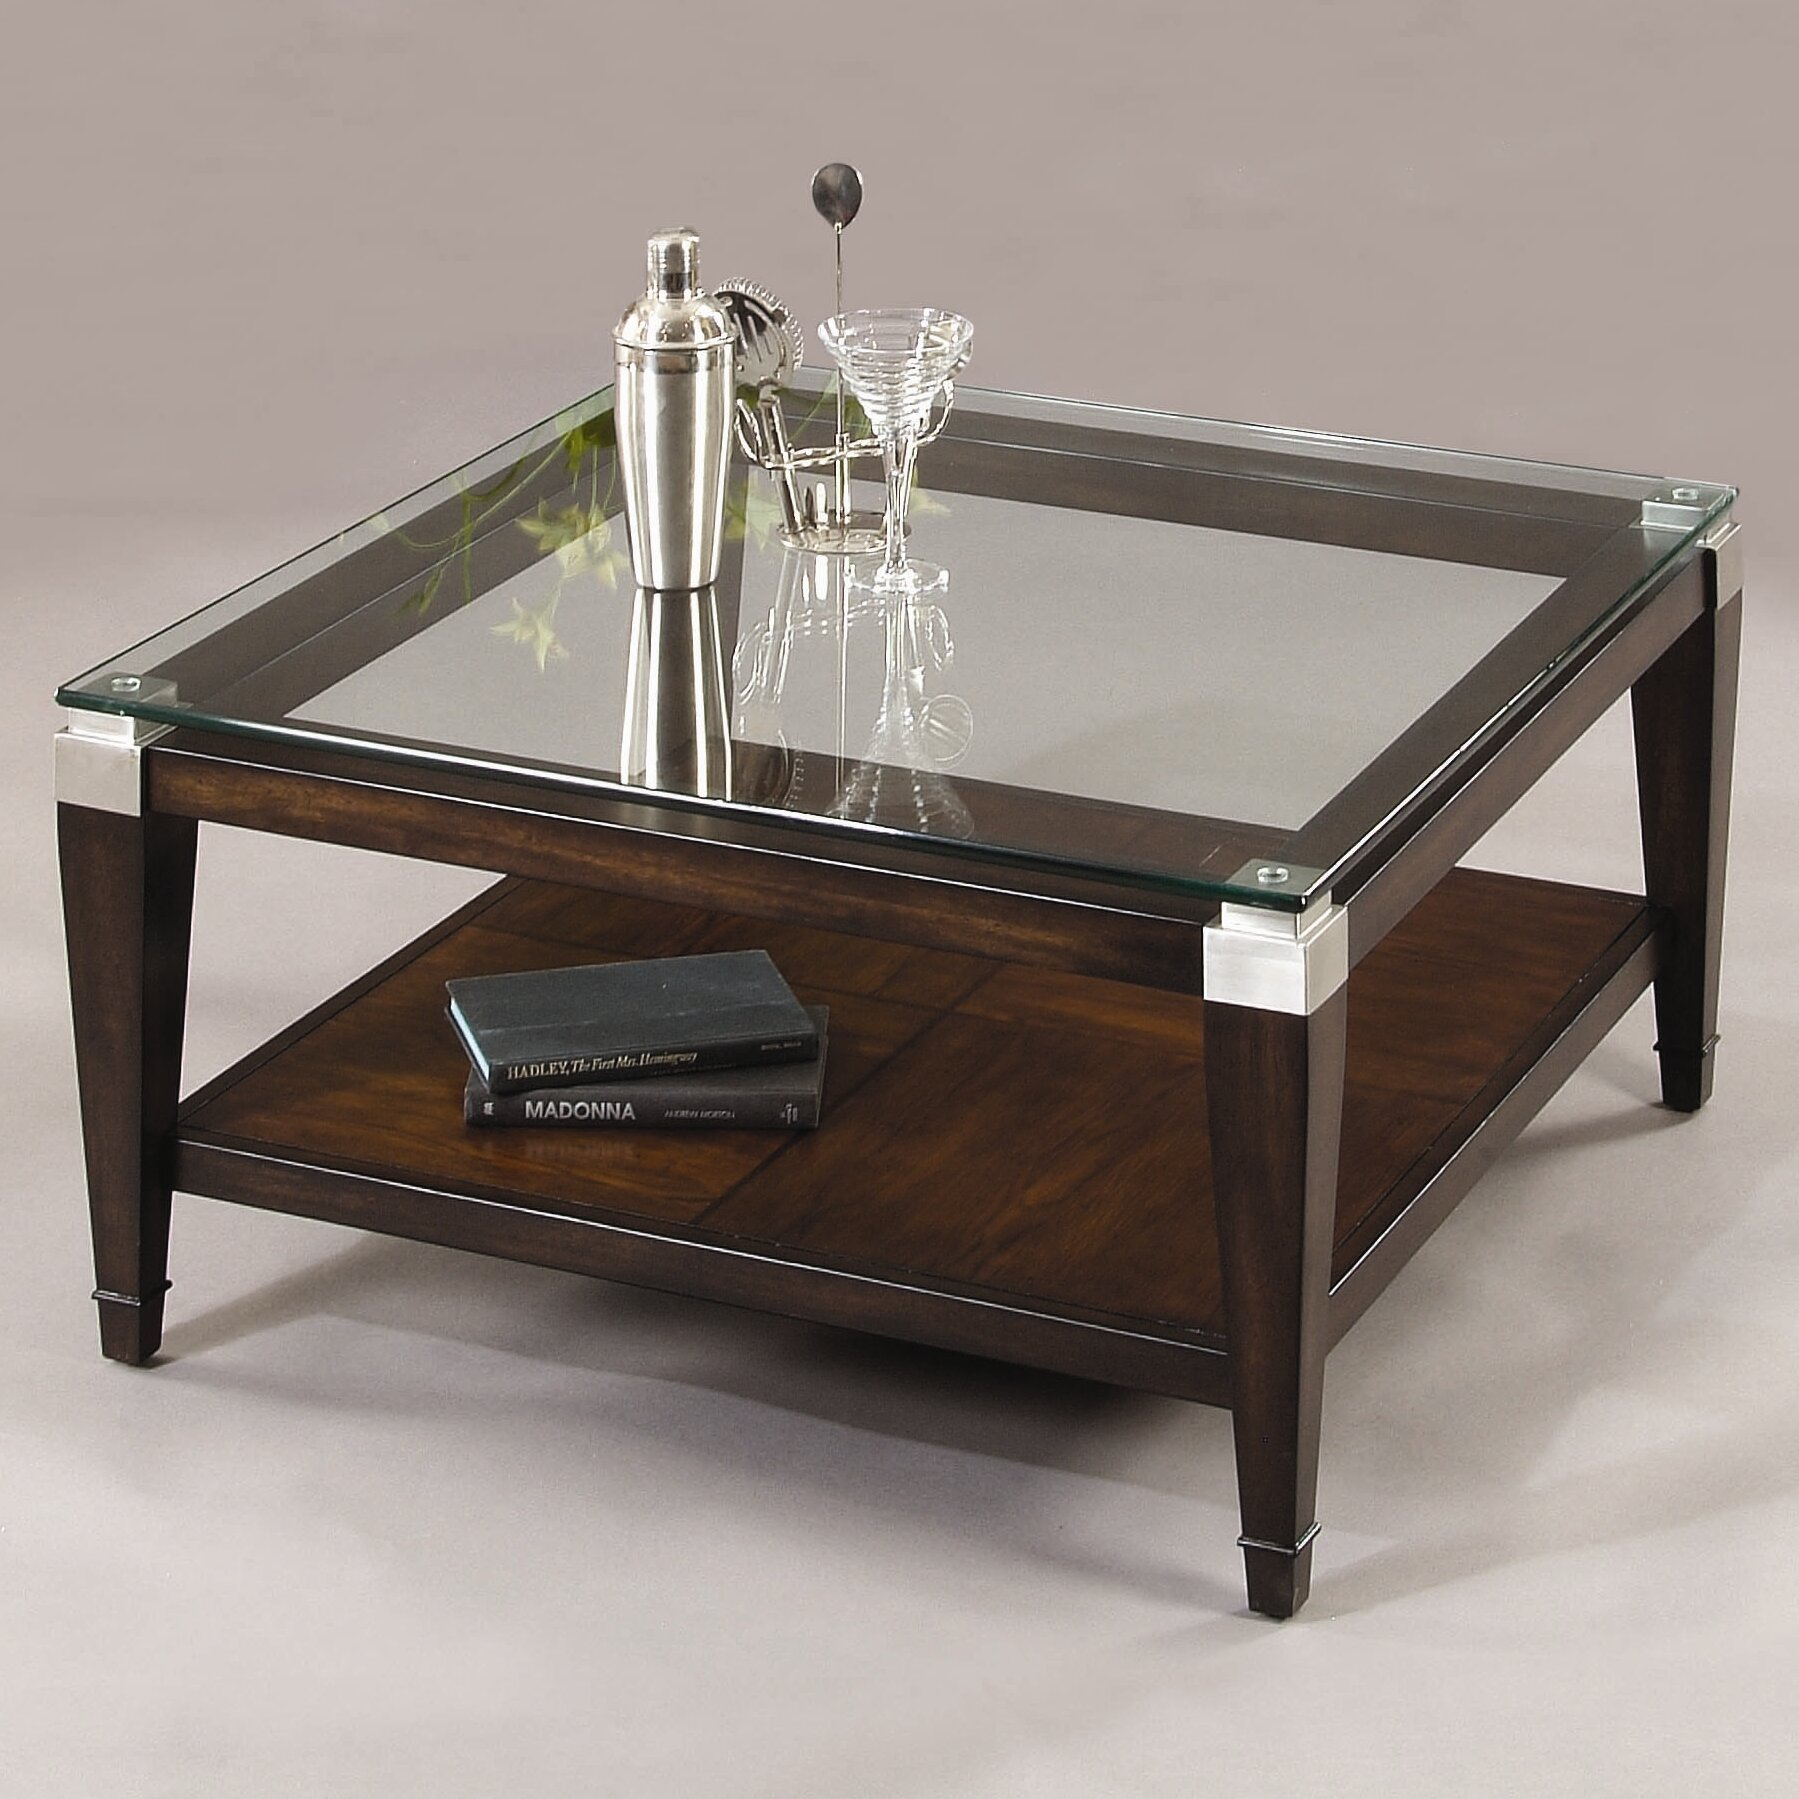 Square Coffee Table By Latitude Run: Bassett Mirror Dunhill Coffee Table & Reviews